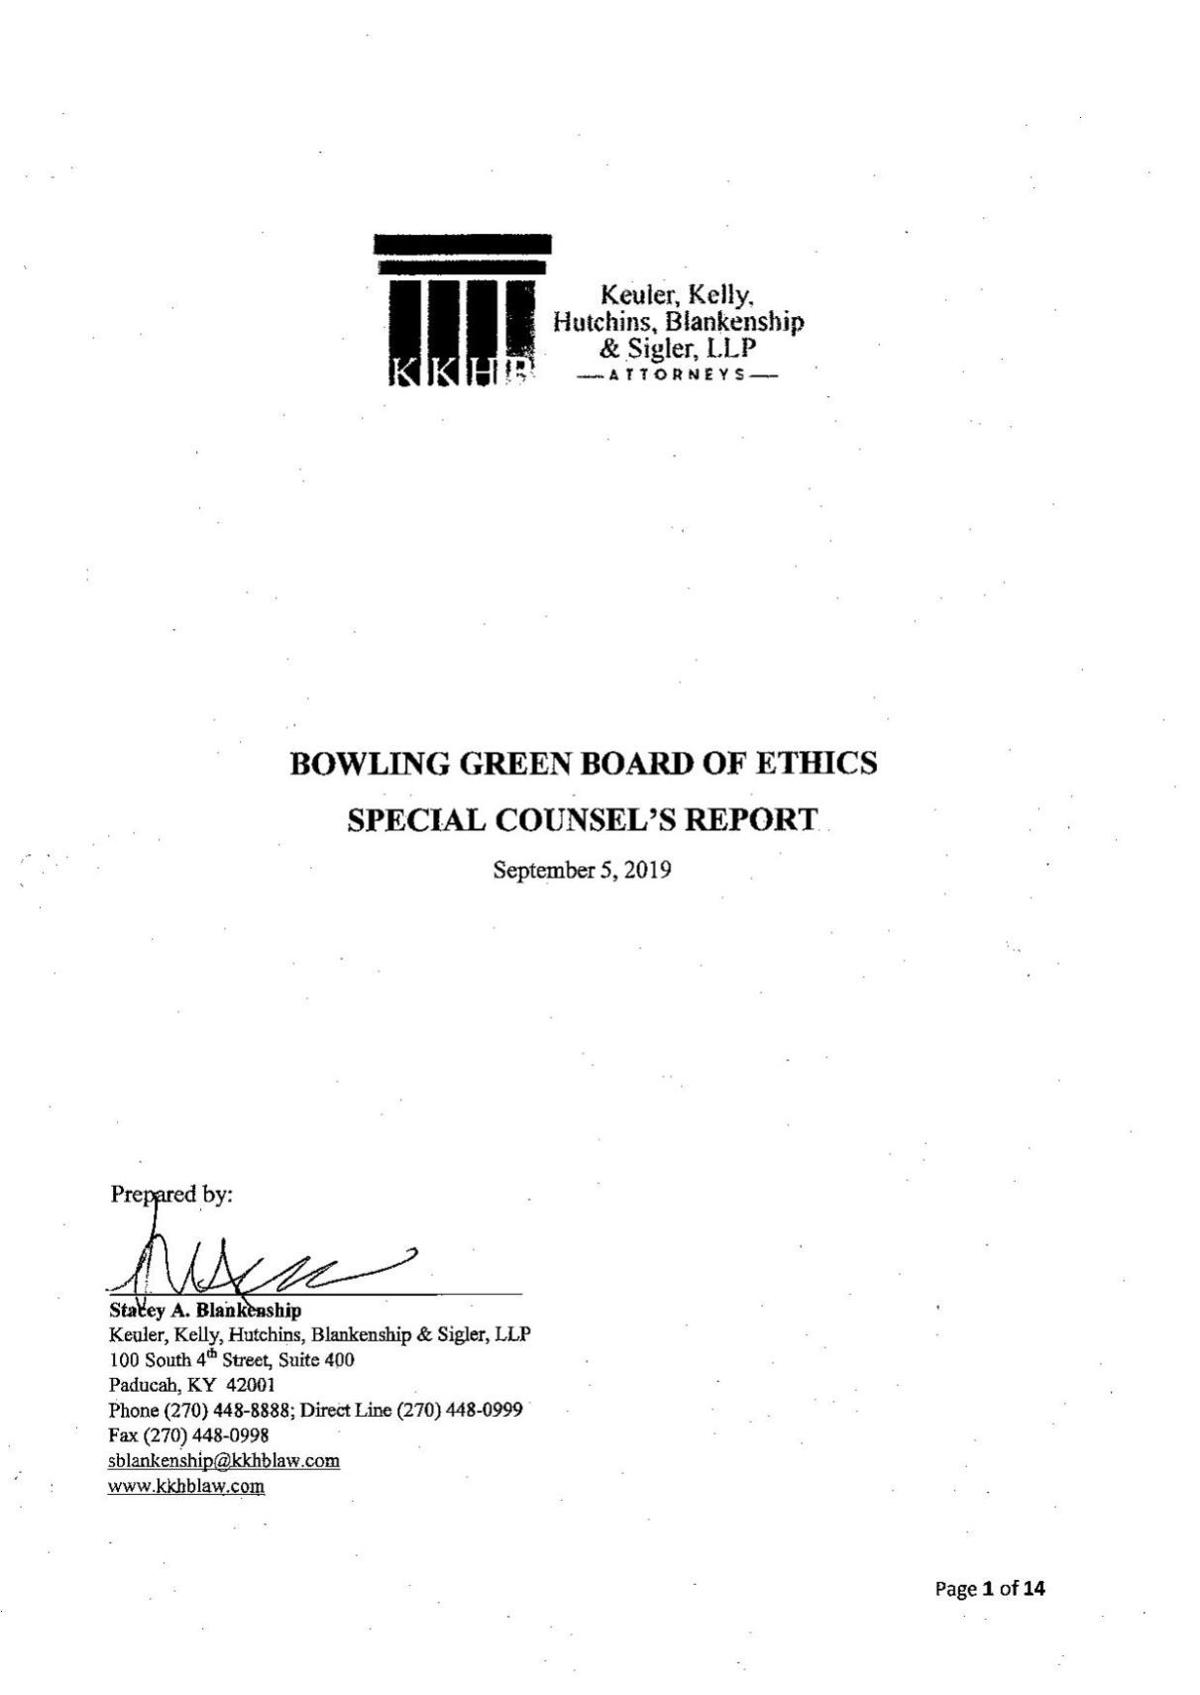 Bowling Green Board of Ethics Special Counsel's Report